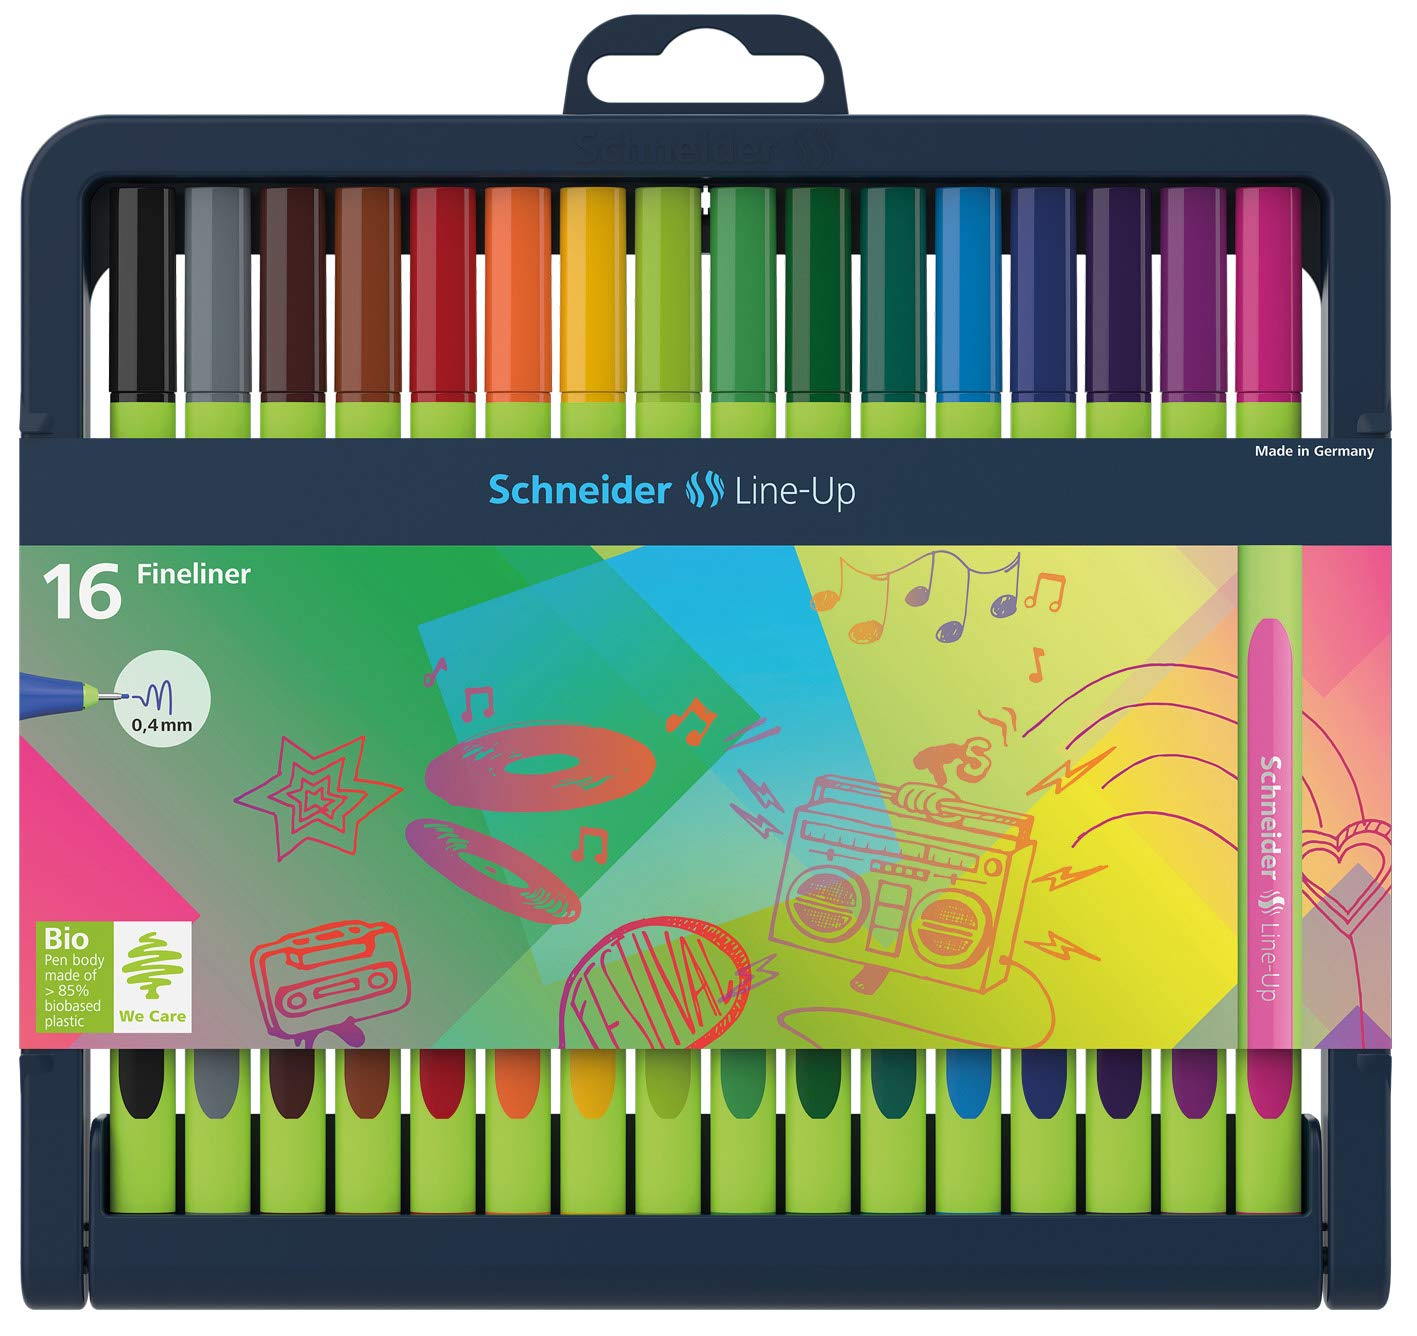 Schneider Line-Up Fineliner with Stand-Up Case, 0.4mm, 16 Pieces, Assorted Colors (191092)